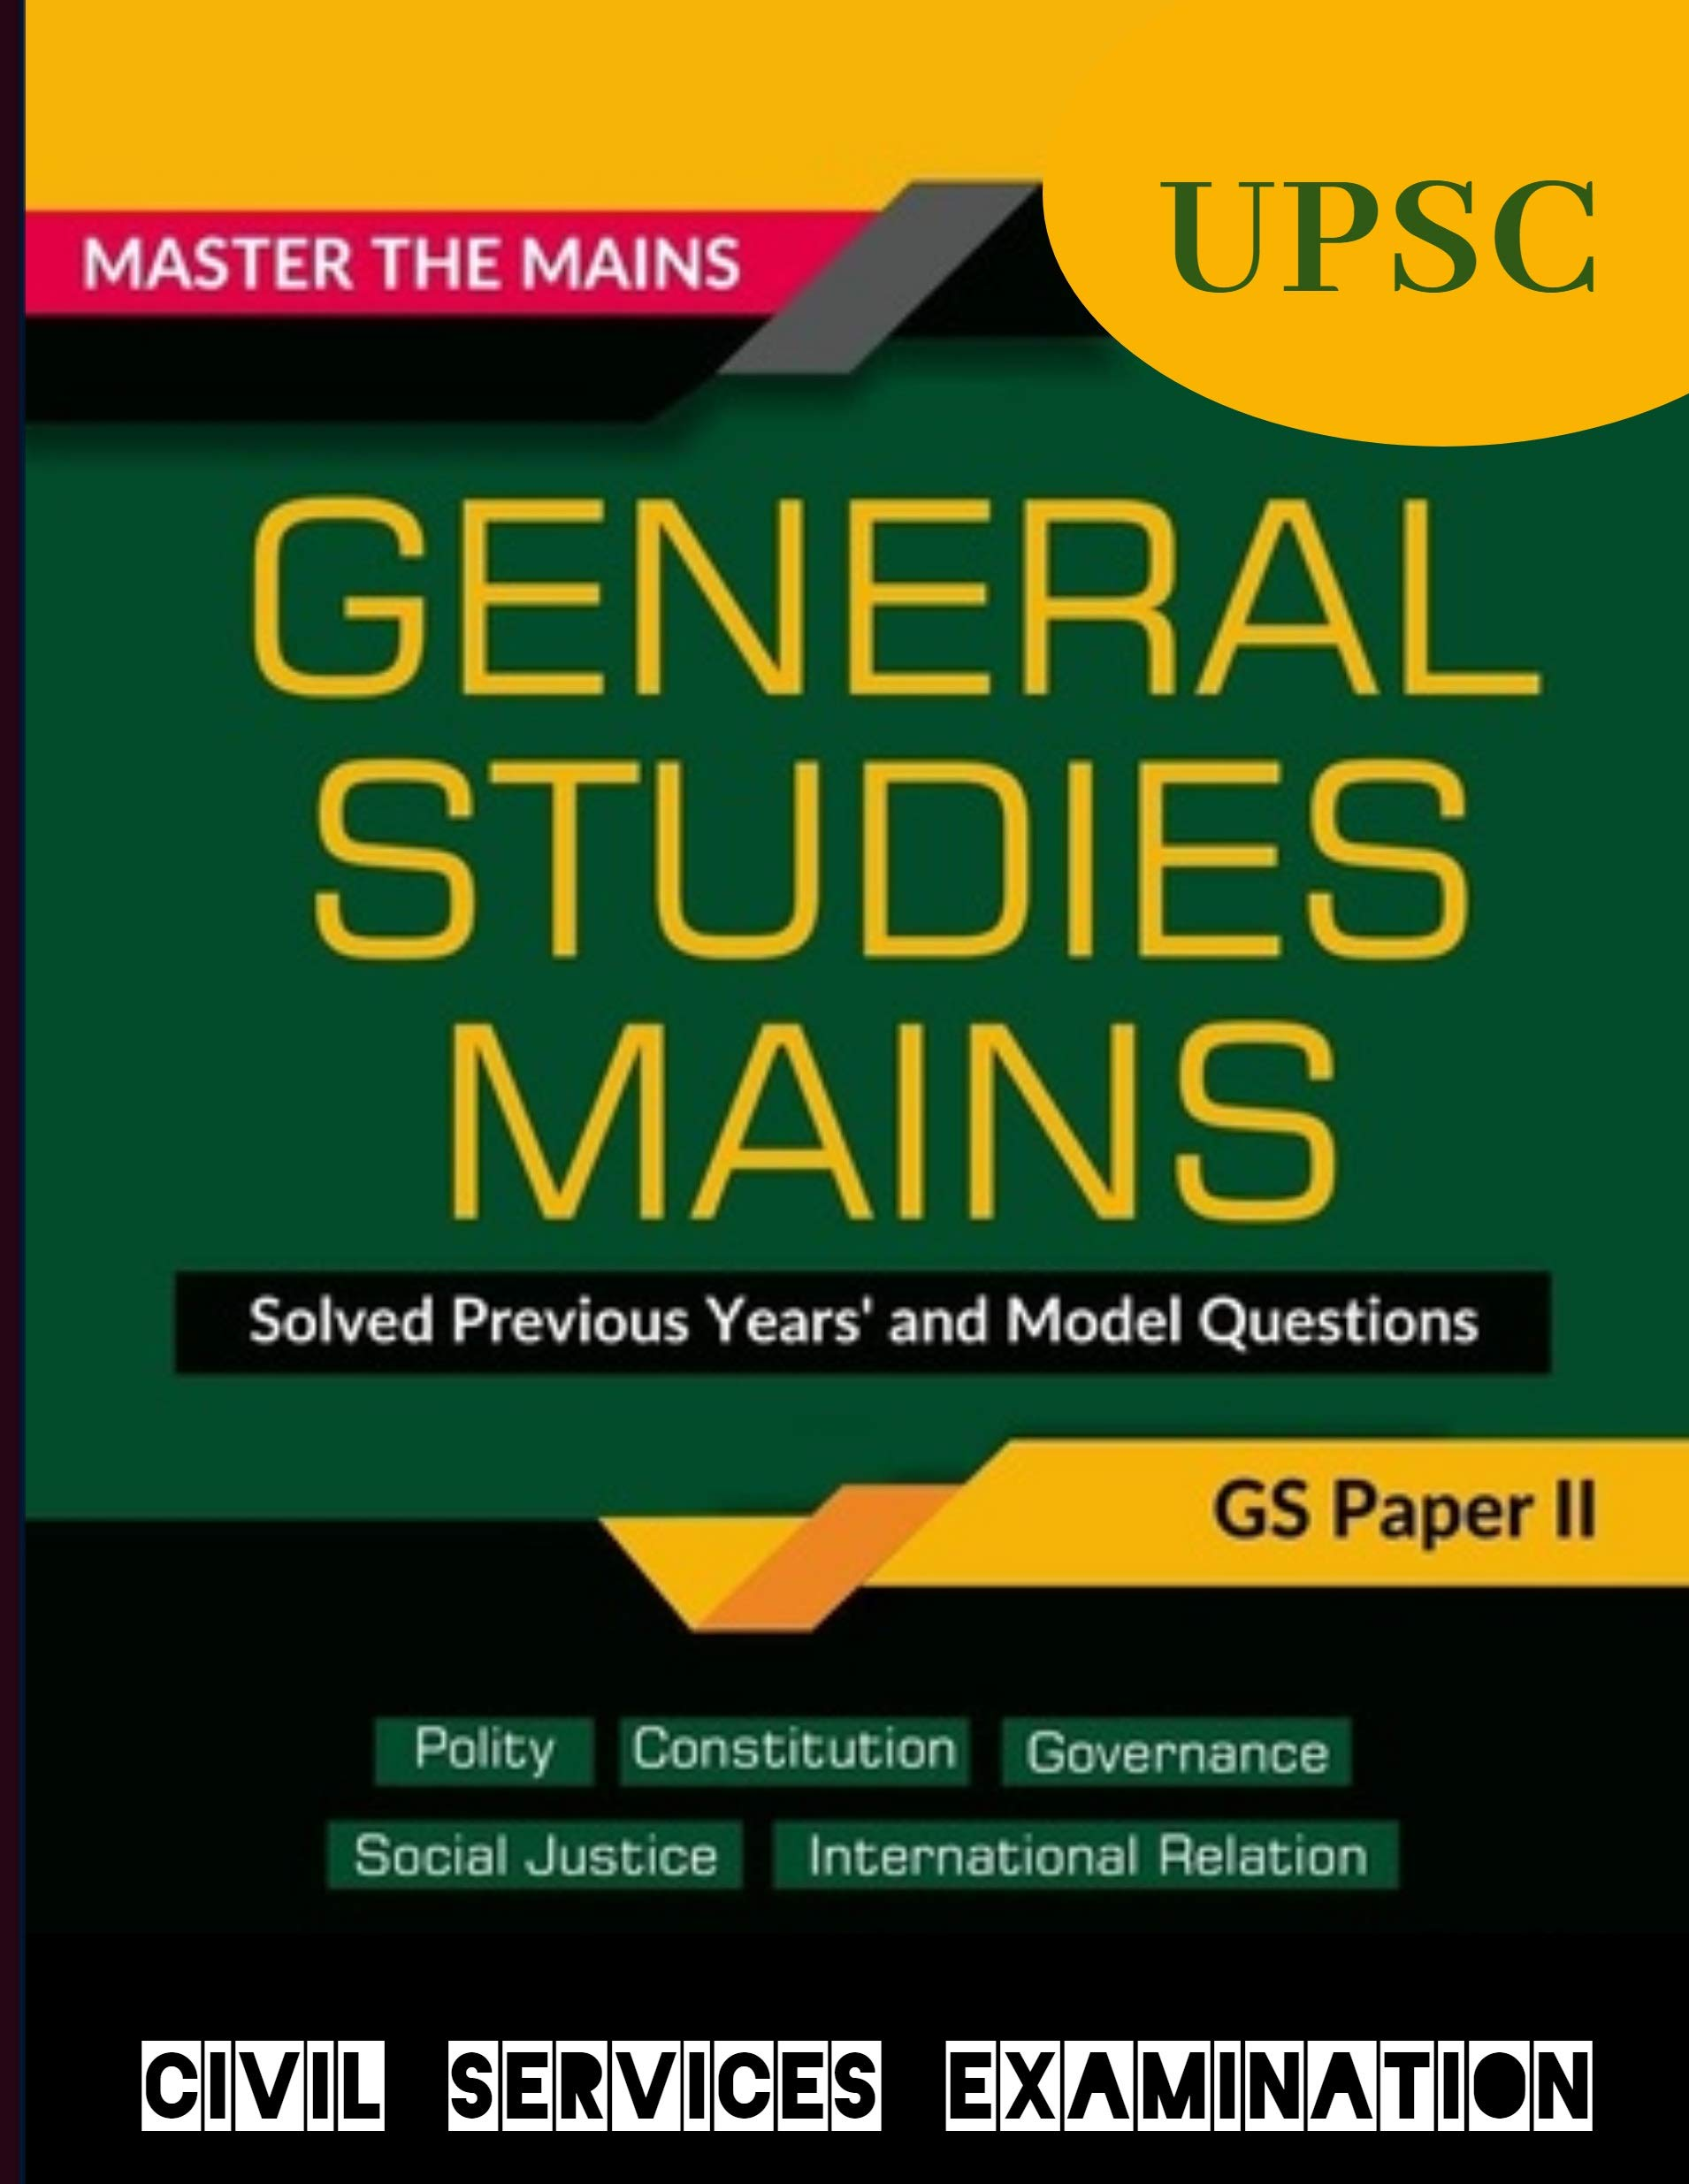 UPSC IAS Mains General Studies Paper 2: Solved Previous Years and Model Question I Civil Services Exam